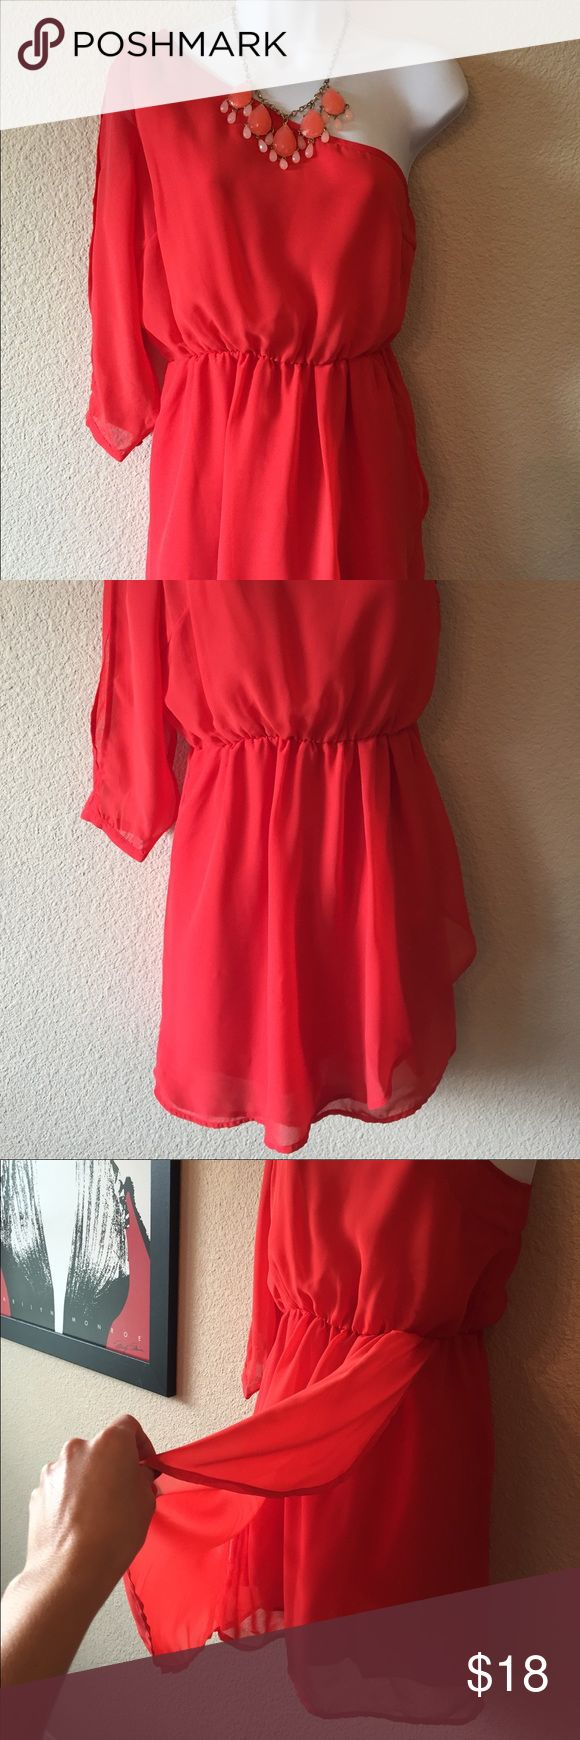 One shoulder dress-🎉Veterans Day sale🎉 Cute one shoulder bright orange dress for the summer. The sleeve is sheer with opening on top and bottom as shown in the last photo. Charlotte Russe Dresses One Shoulder